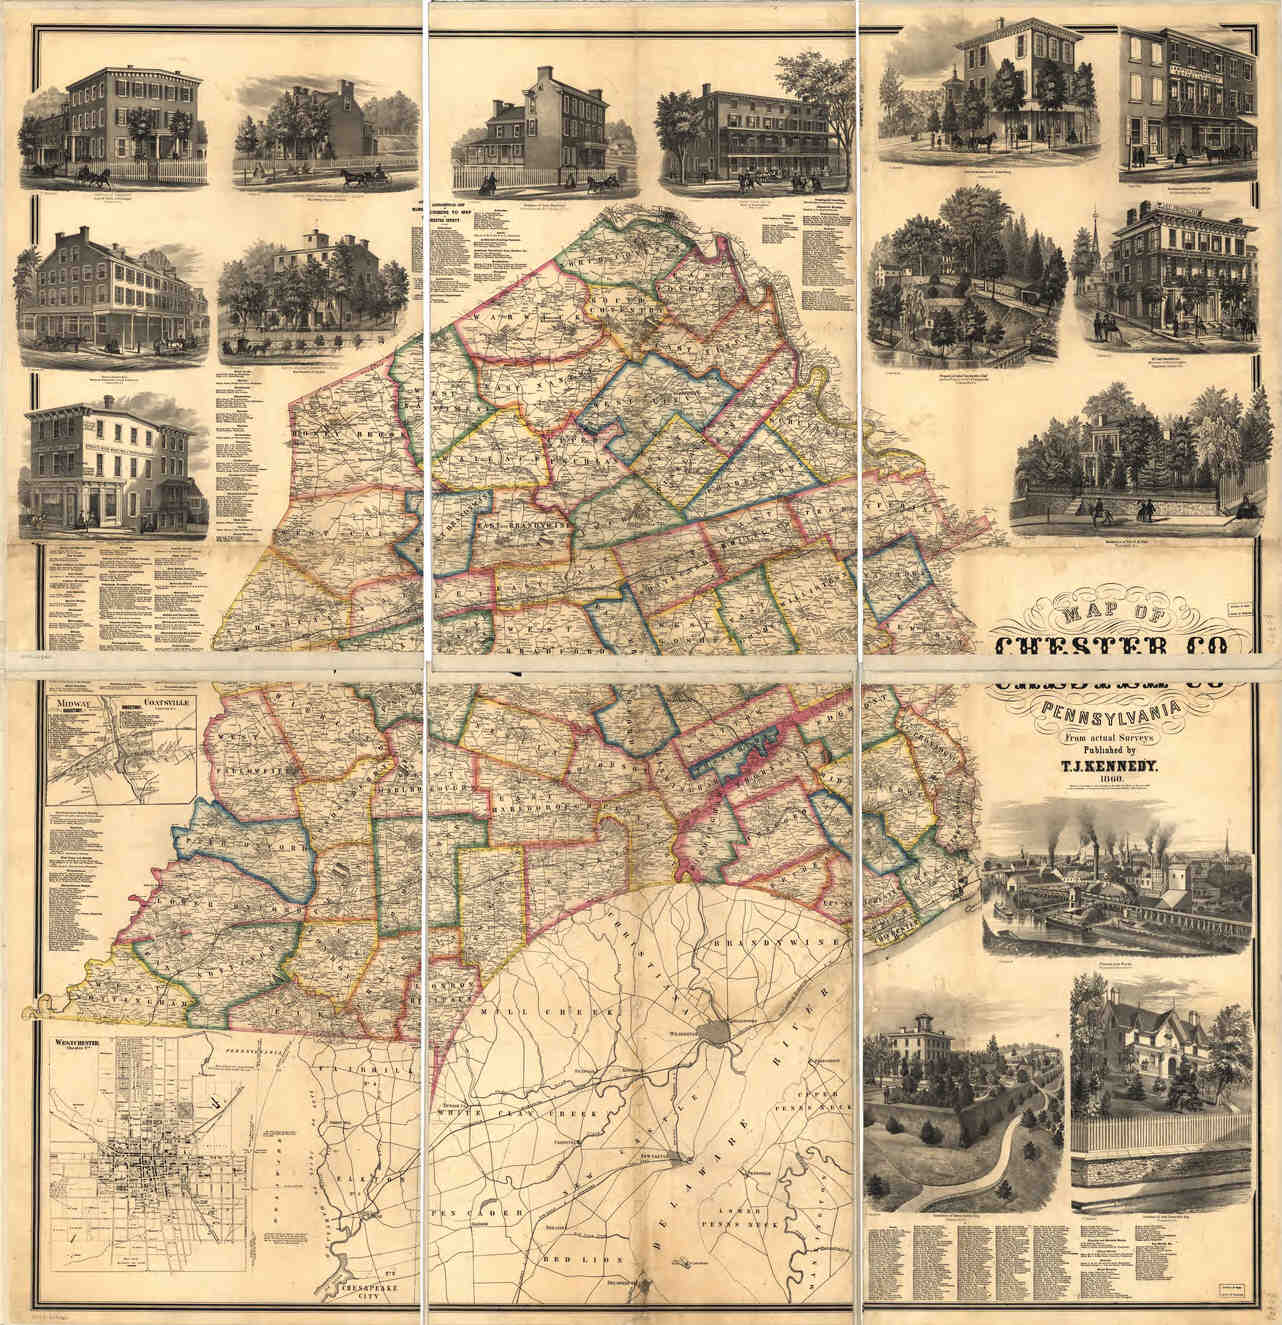 PAgenealogy net   Pennsylvania Historical Maps Chester County   Map of Chester Co  Pennsylvania  from Actual Surveys   Published by T J  Kennedy  1860  222kb